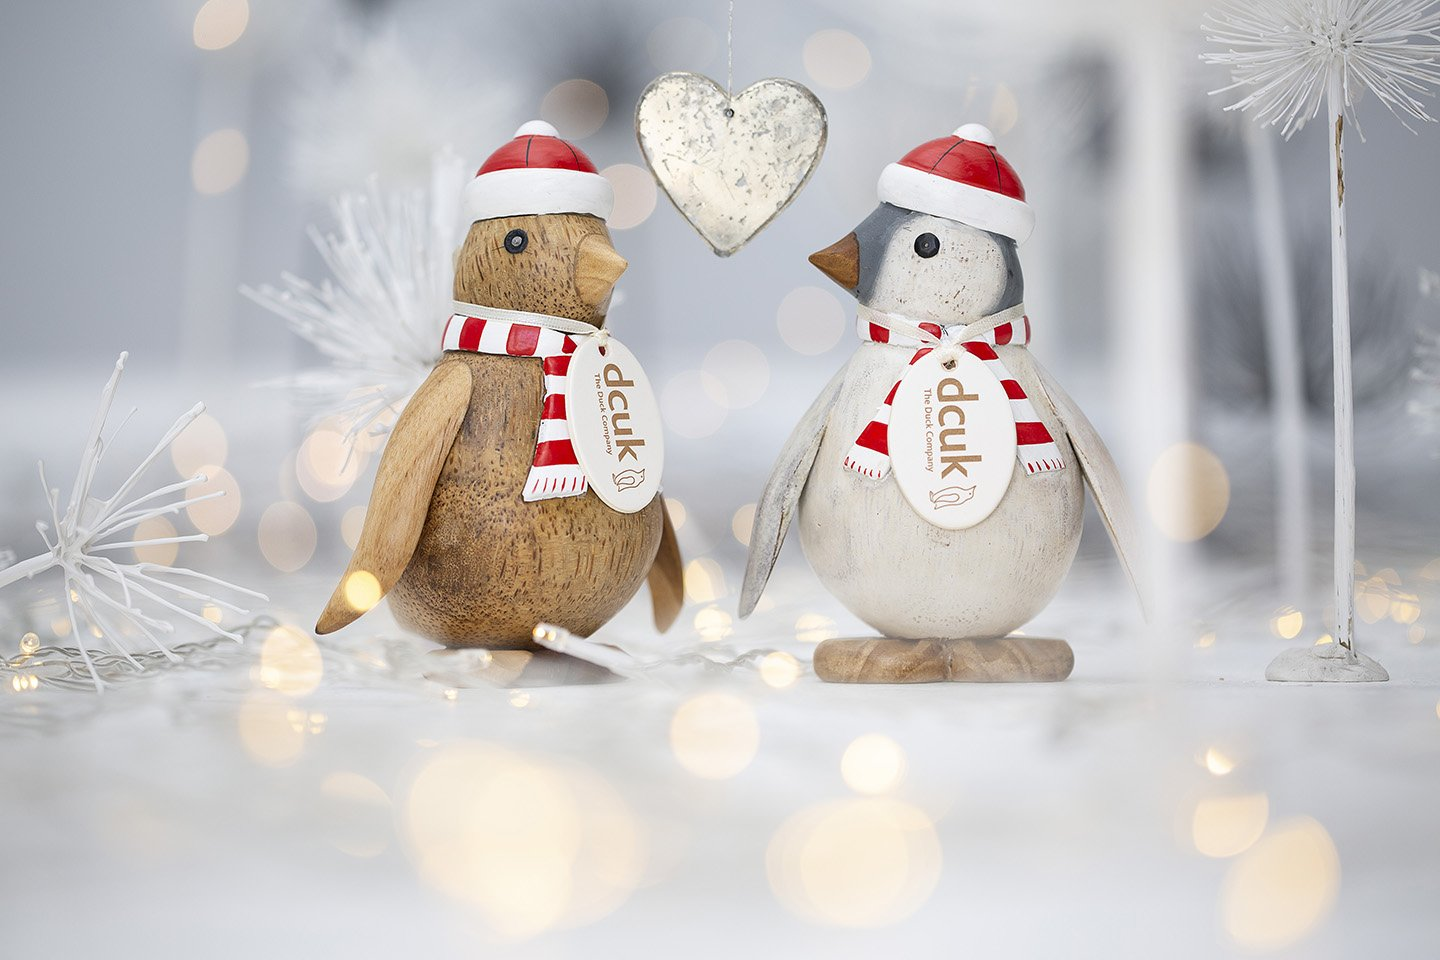 Wooden Baby Emperor Penguins with Hats & Scarves